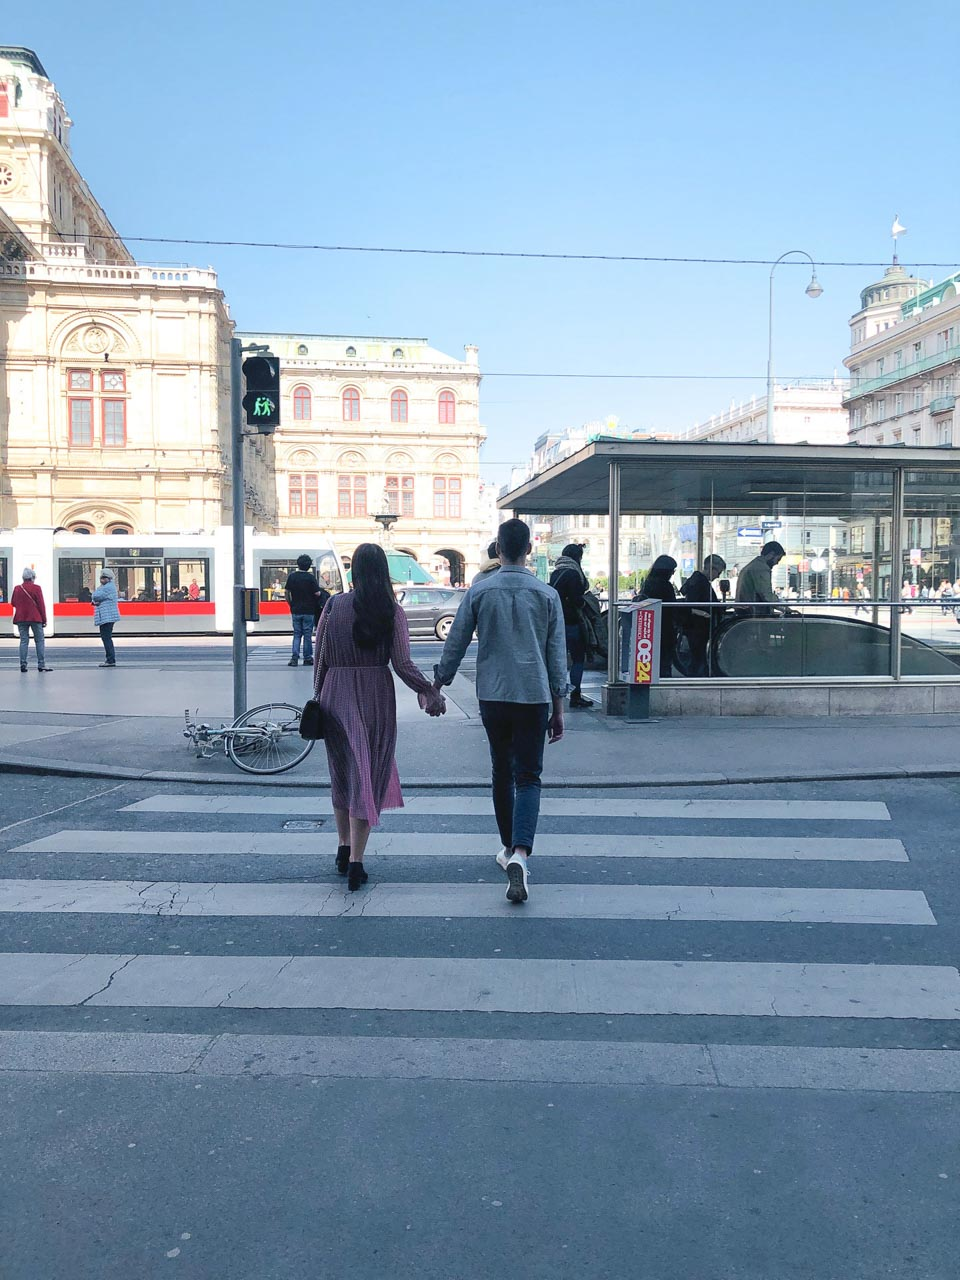 A couple crossing the street in Vienna, Austria